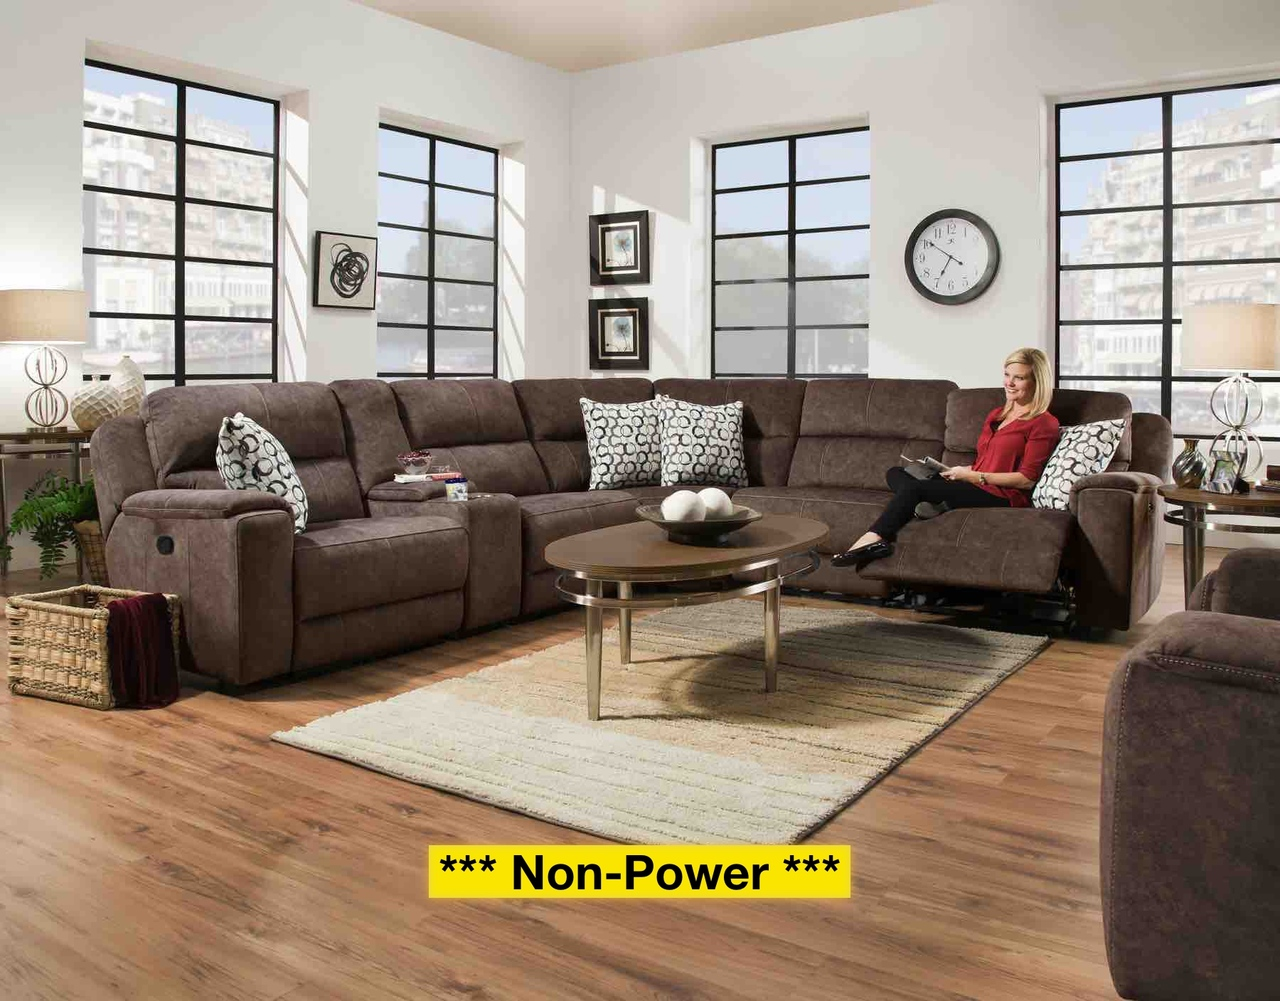 79001 6-Piece Sectional: Imprint Cocoa $1499